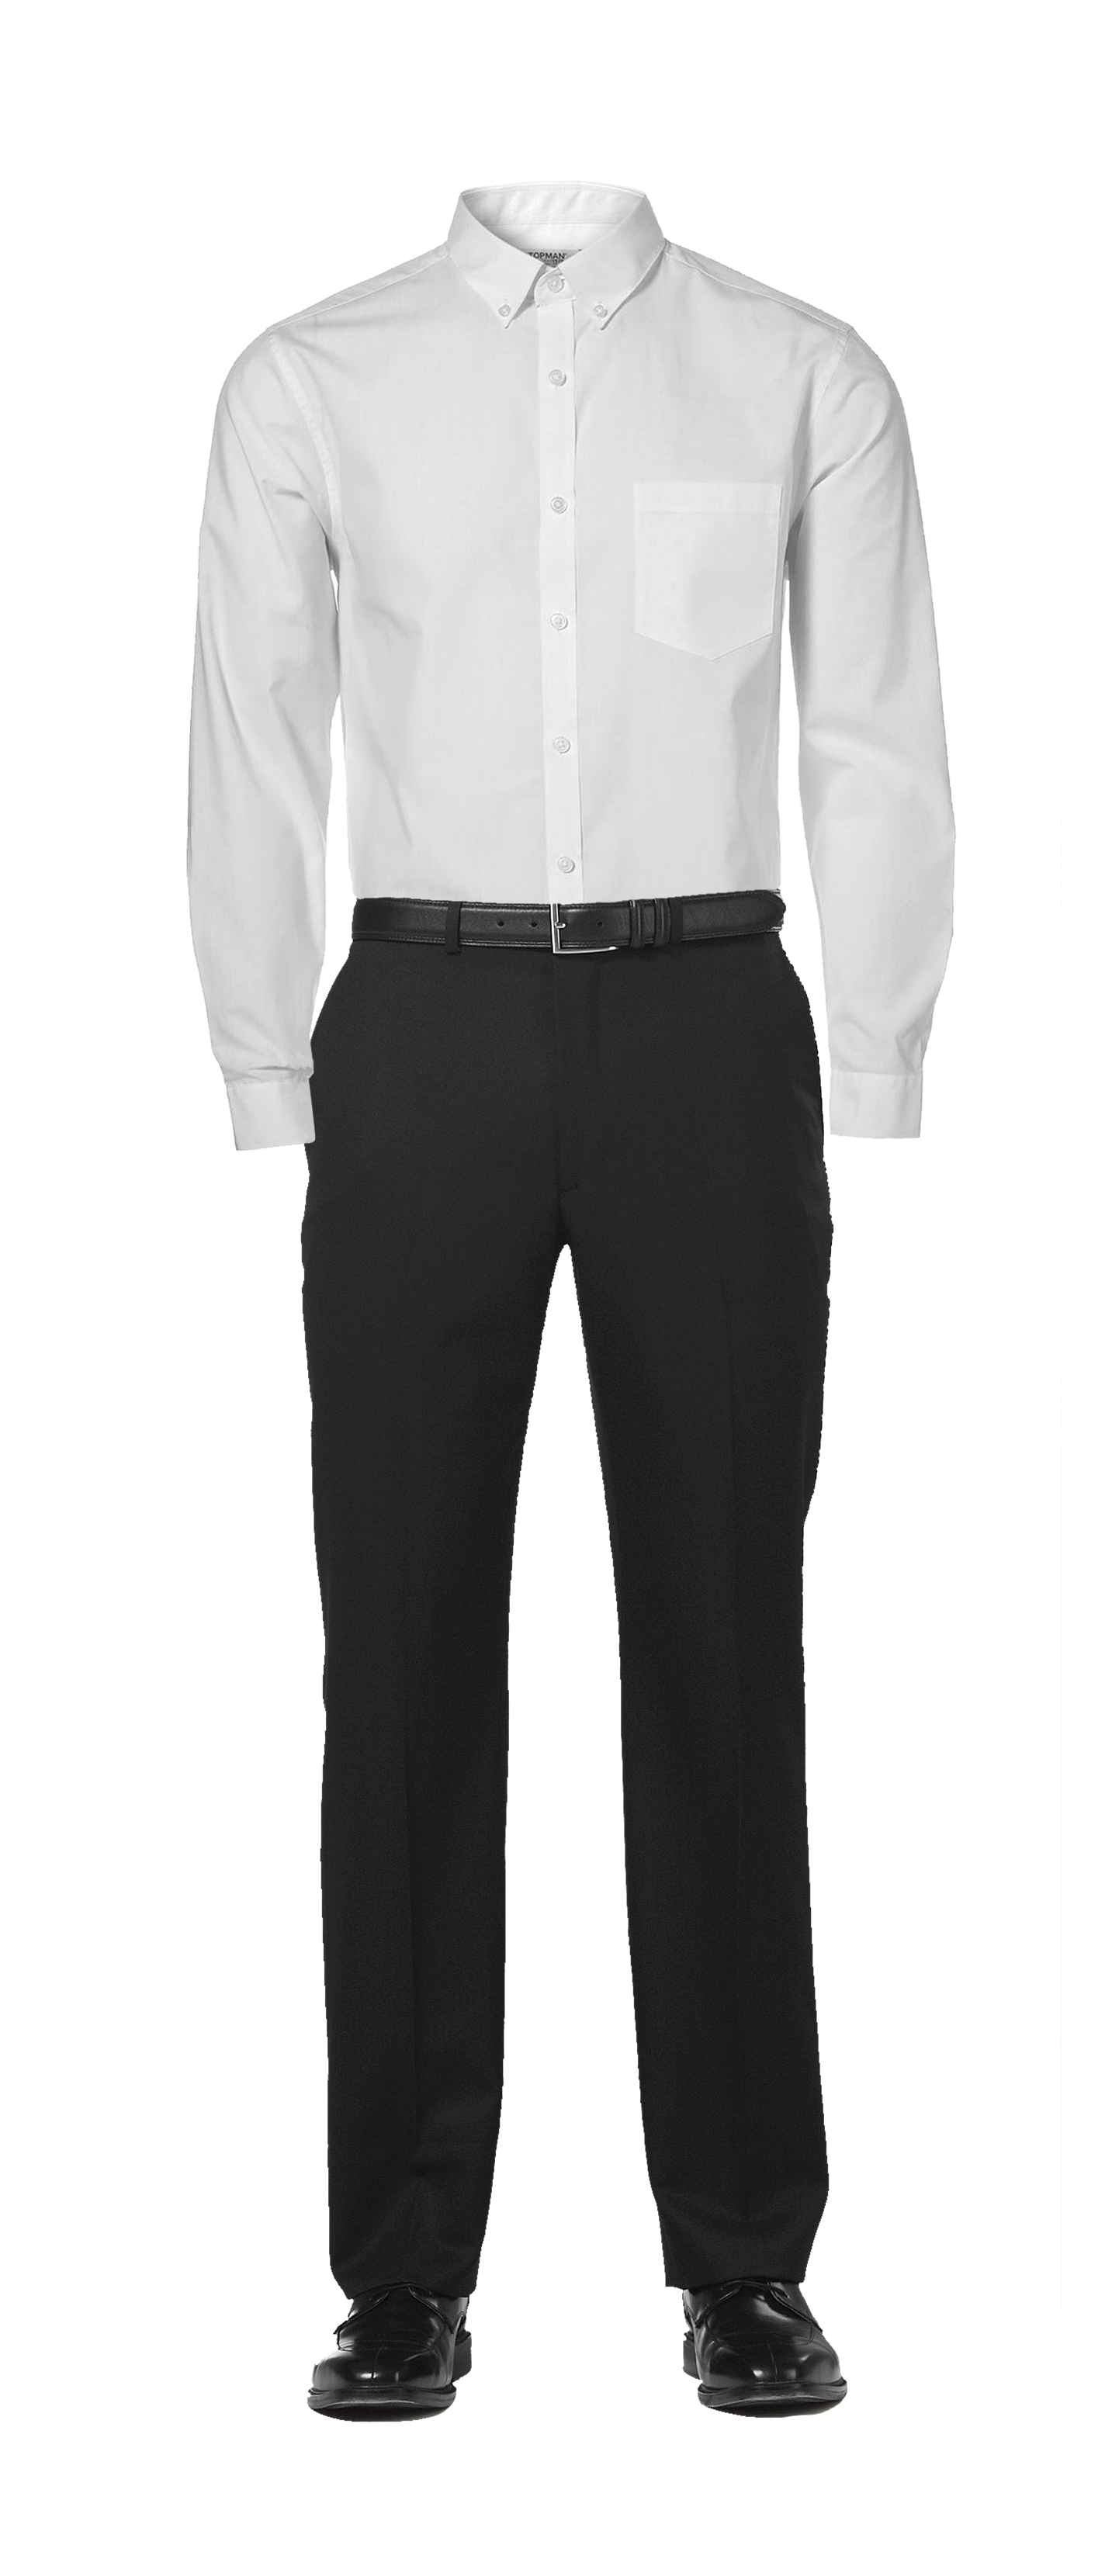 Employee clipart tuxedo. Private event catering staff